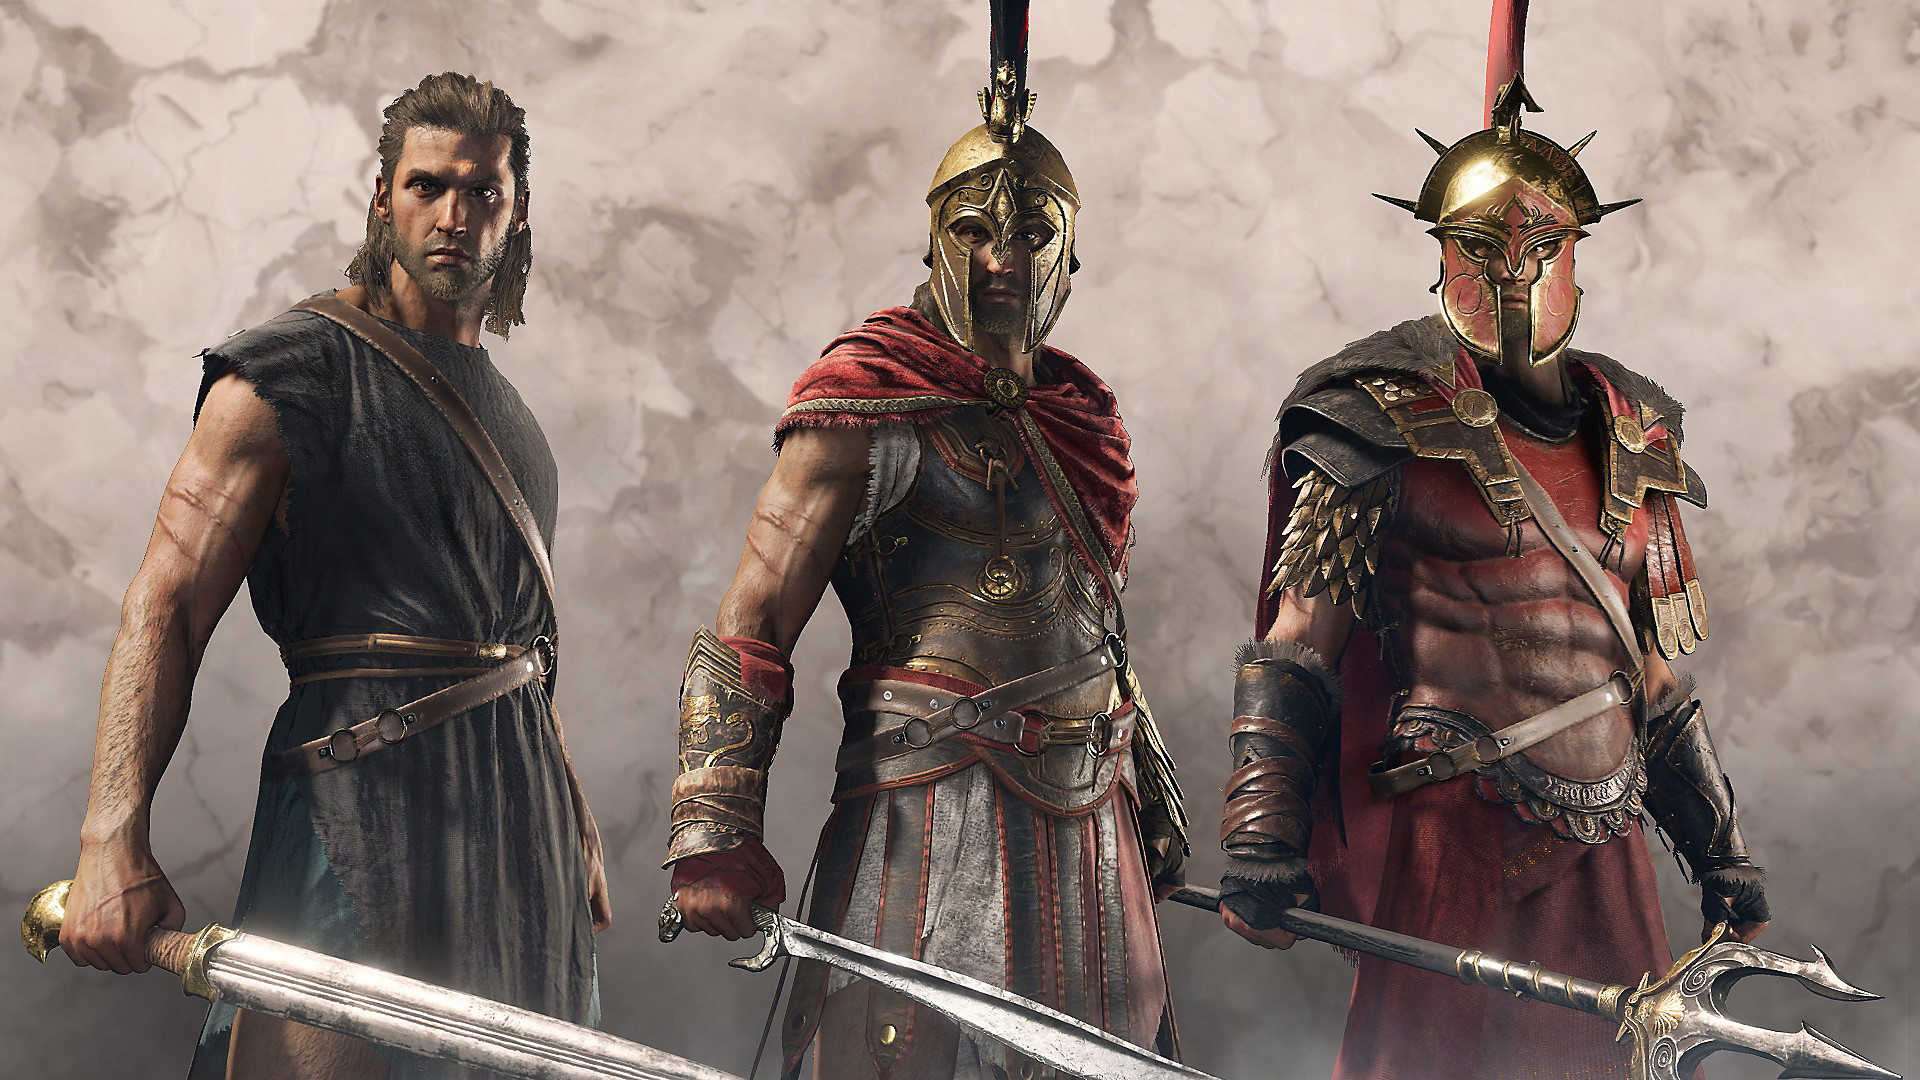 Héroes legendarios de Assassin's Creed Odyssey